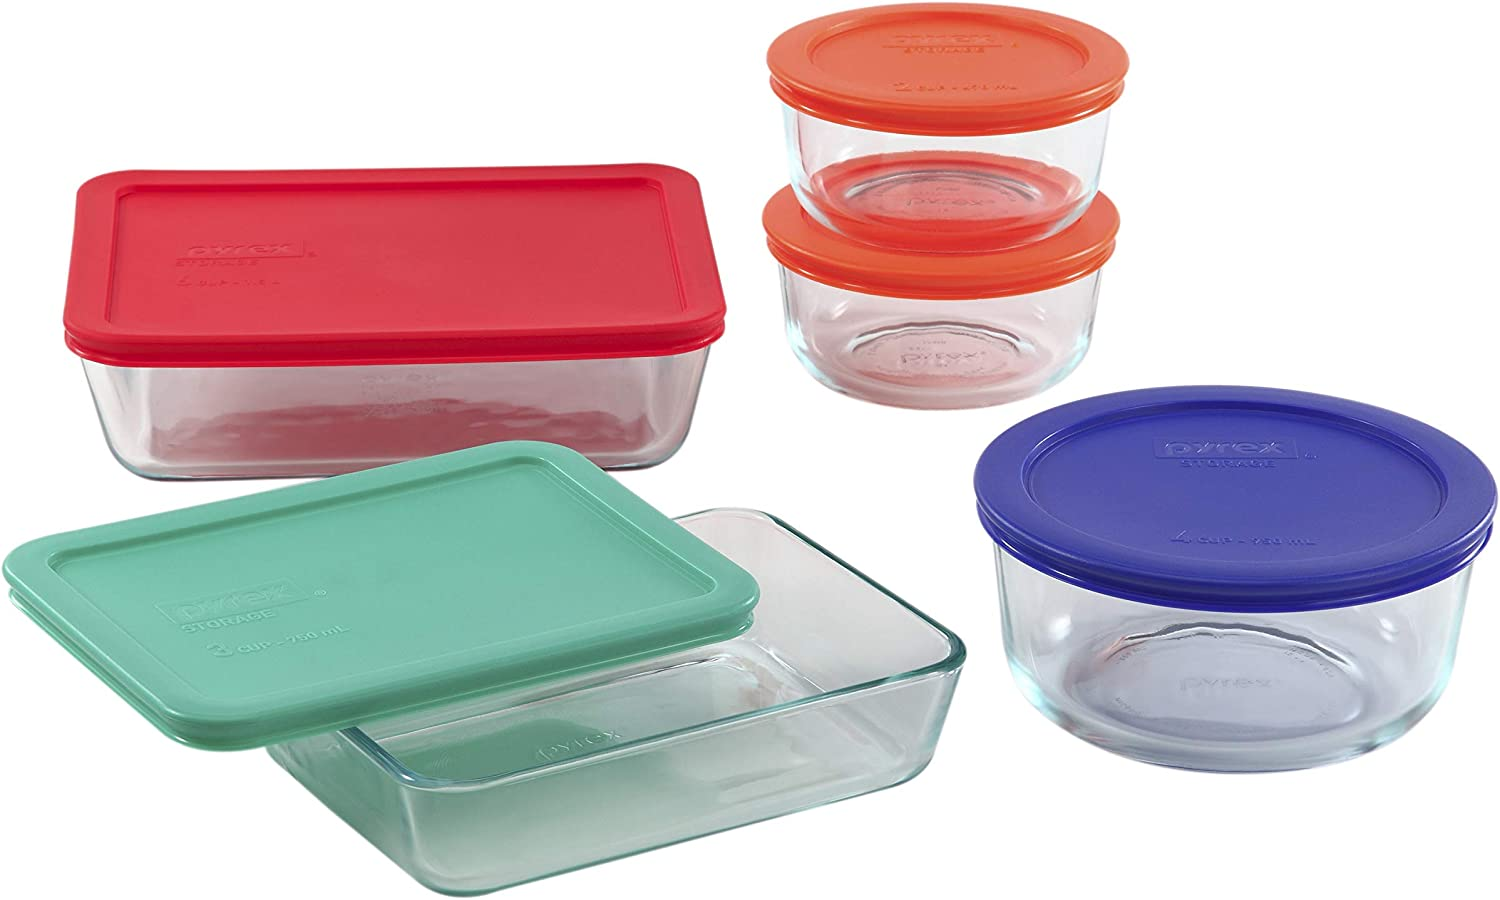 Pyrex Simply Store Meal Prep Glass Food Storage Containers (10-Piece Set, BPA Free Lids, Oven Safe)